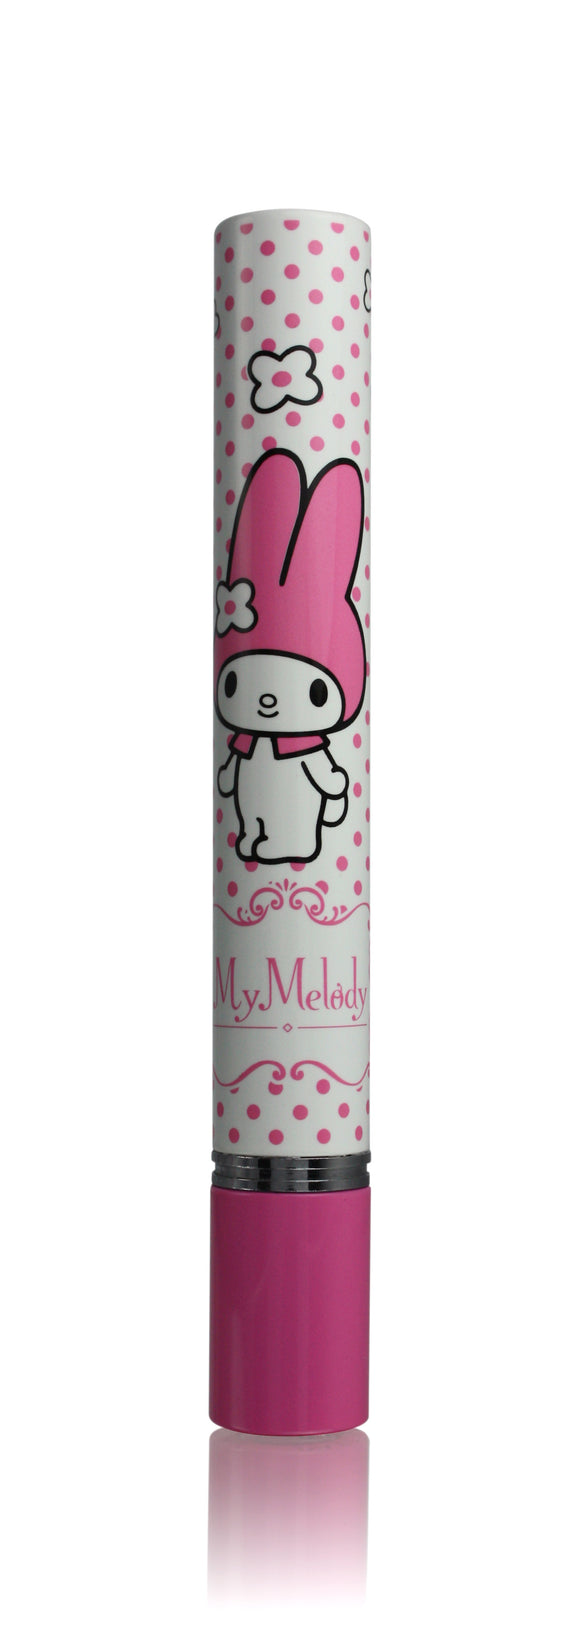 My Melody Perfume Atomizer P760MM02